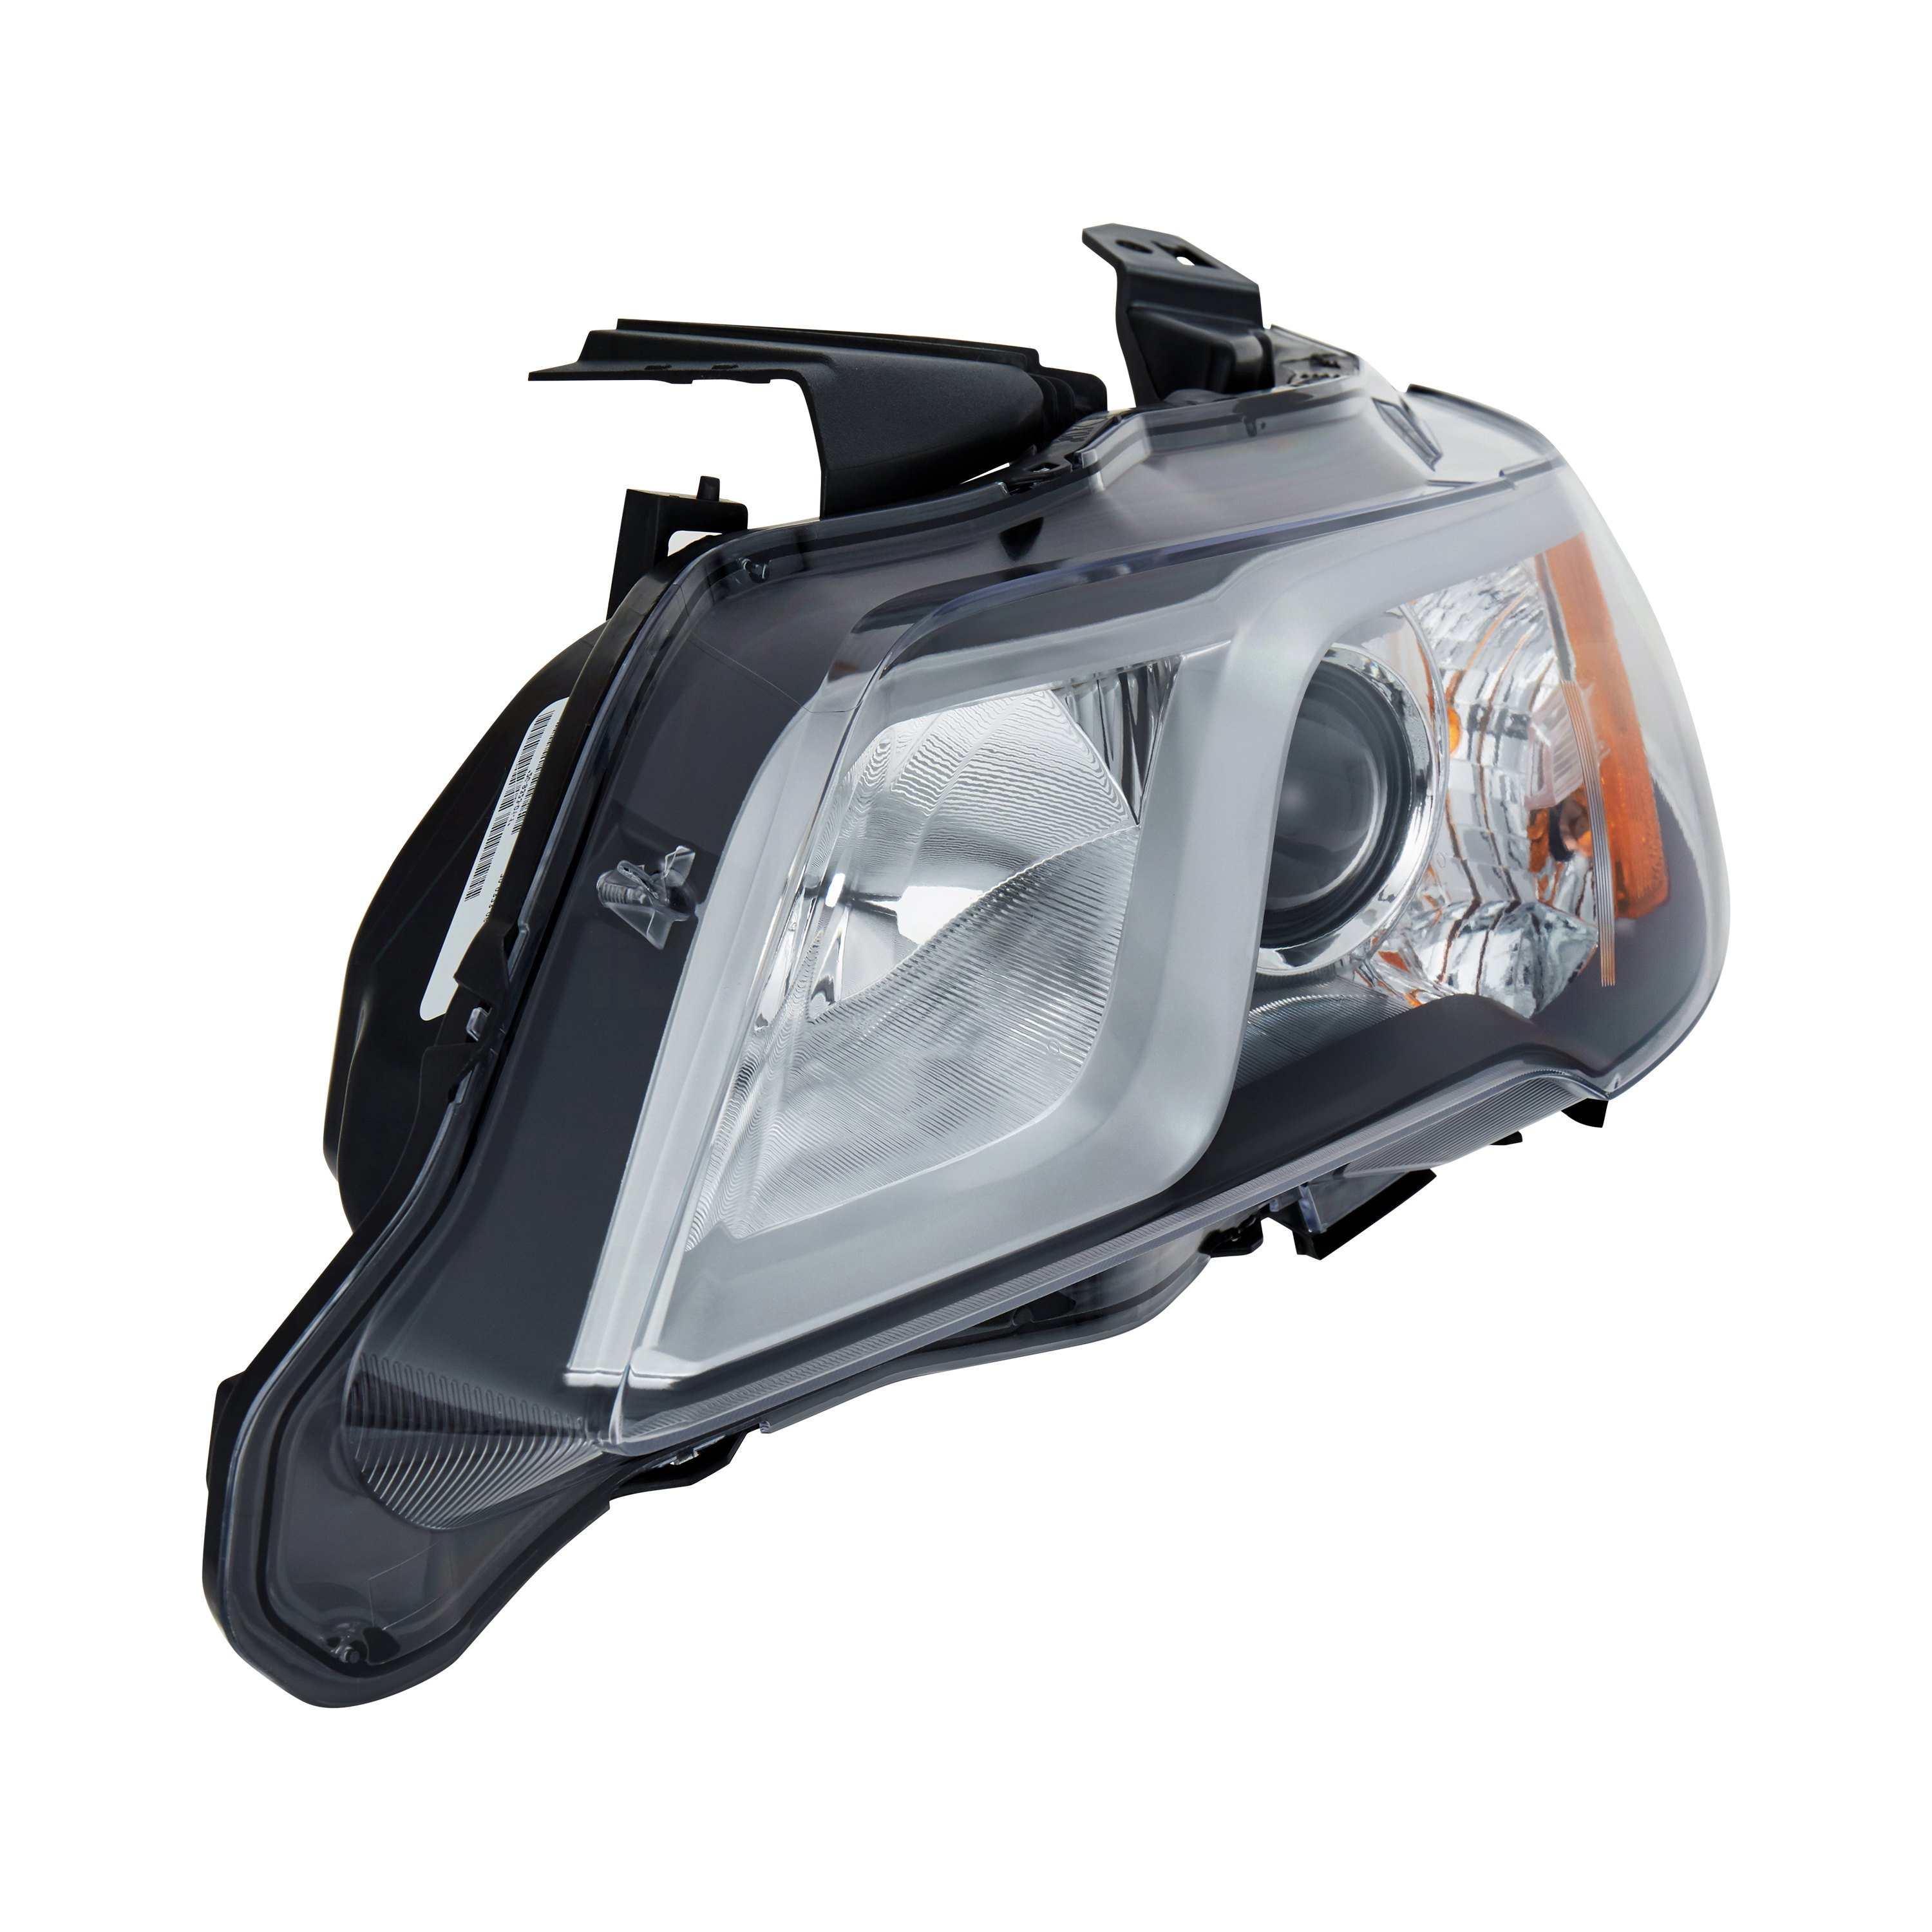 Acura RDX 2015 Replacement Headlight